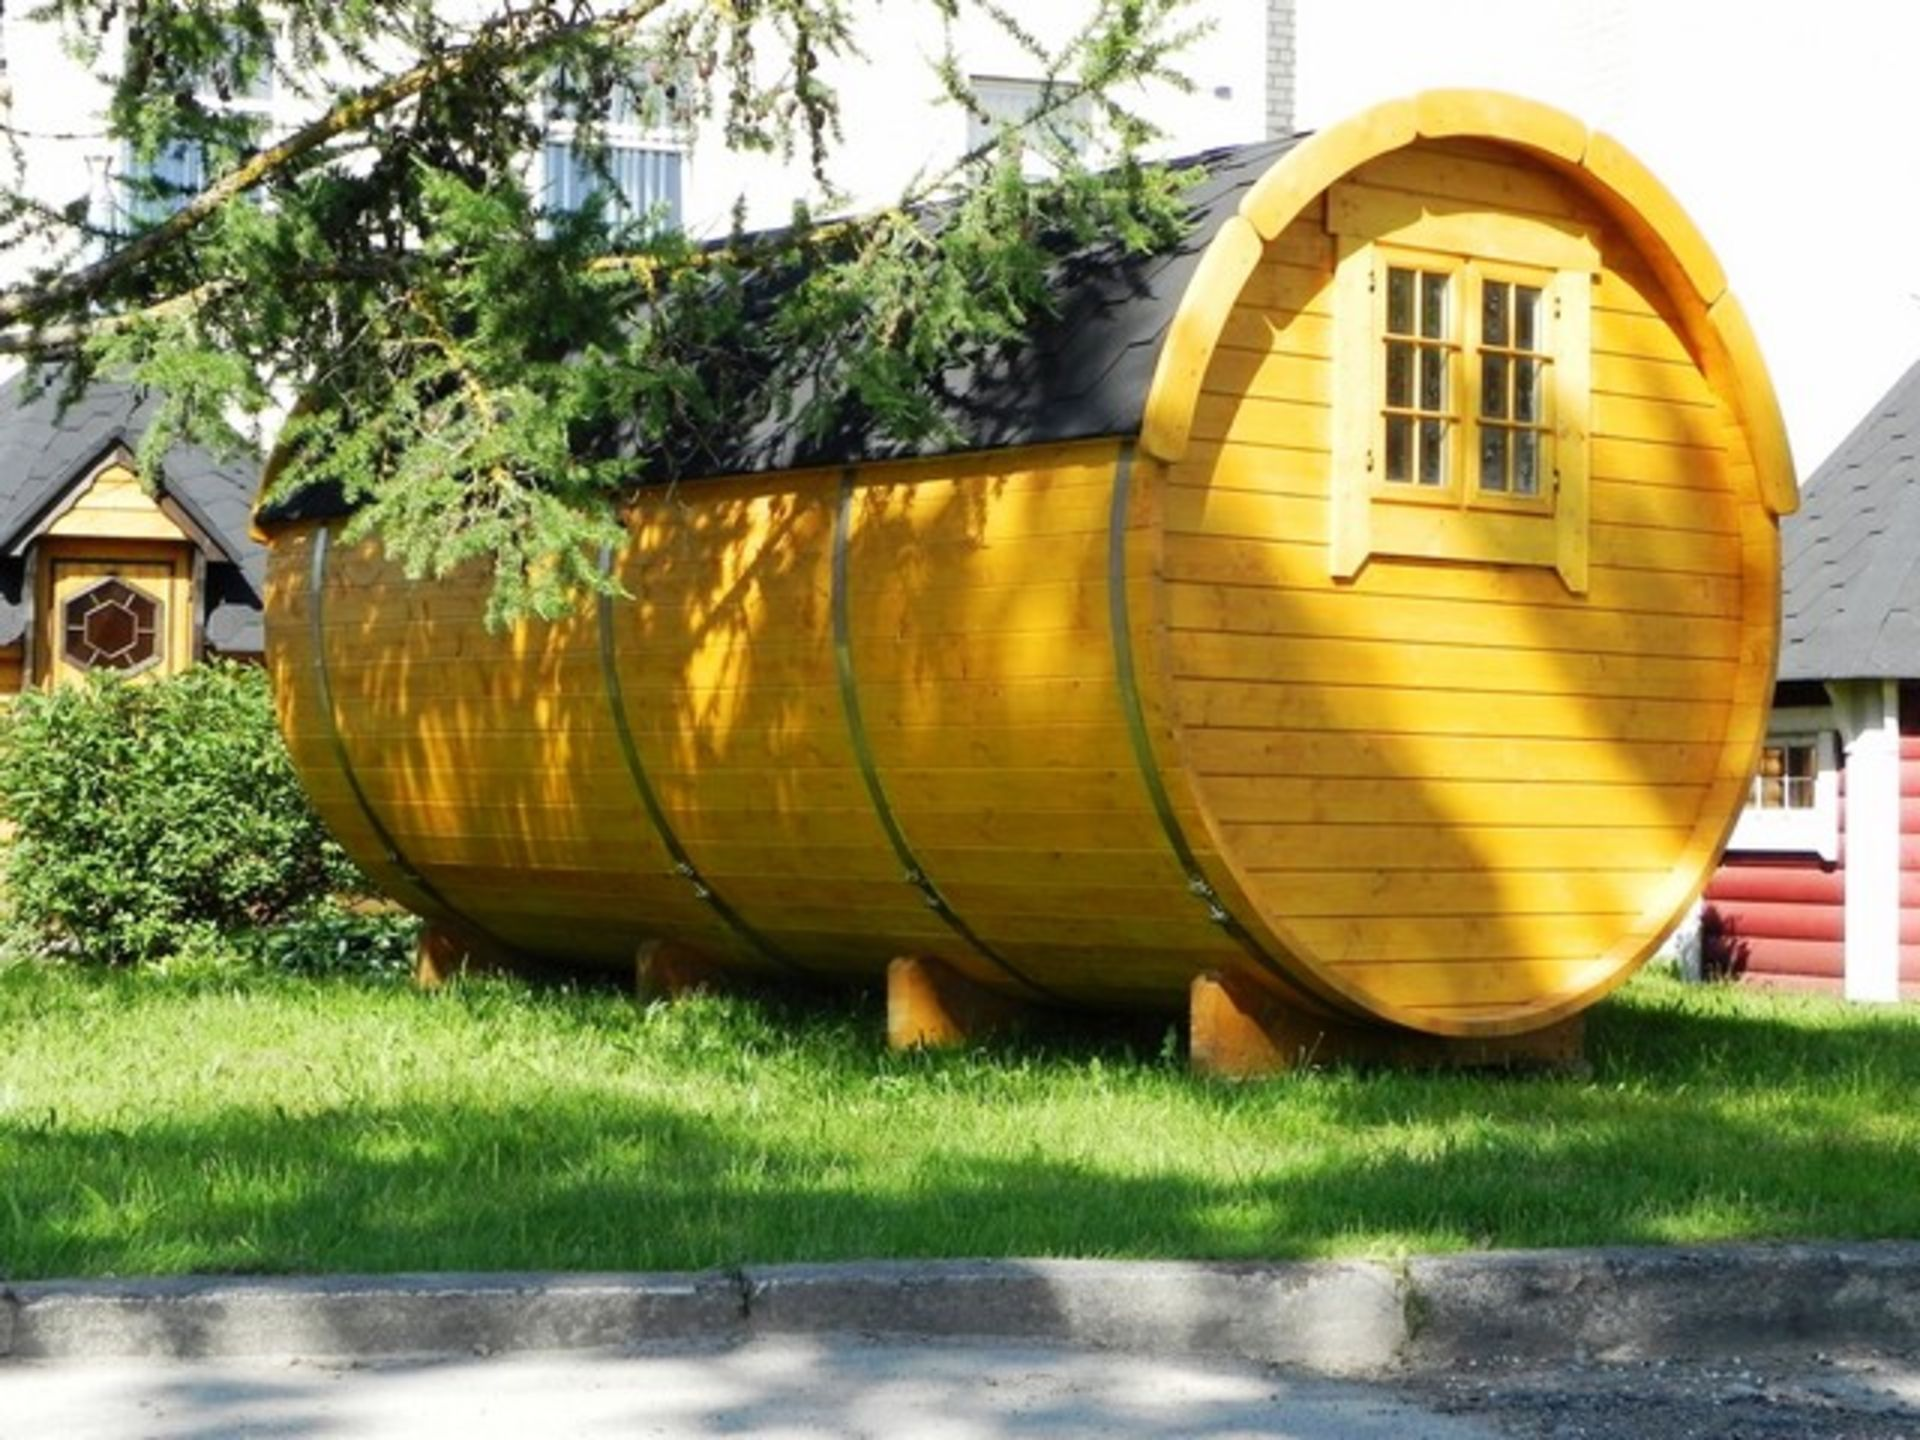 Lot 19056 - + VAT Brand New 4 x 2.4m Barrel For Sleeping - Sleeping Room 2 x 2m - Small Benches at Entrance -